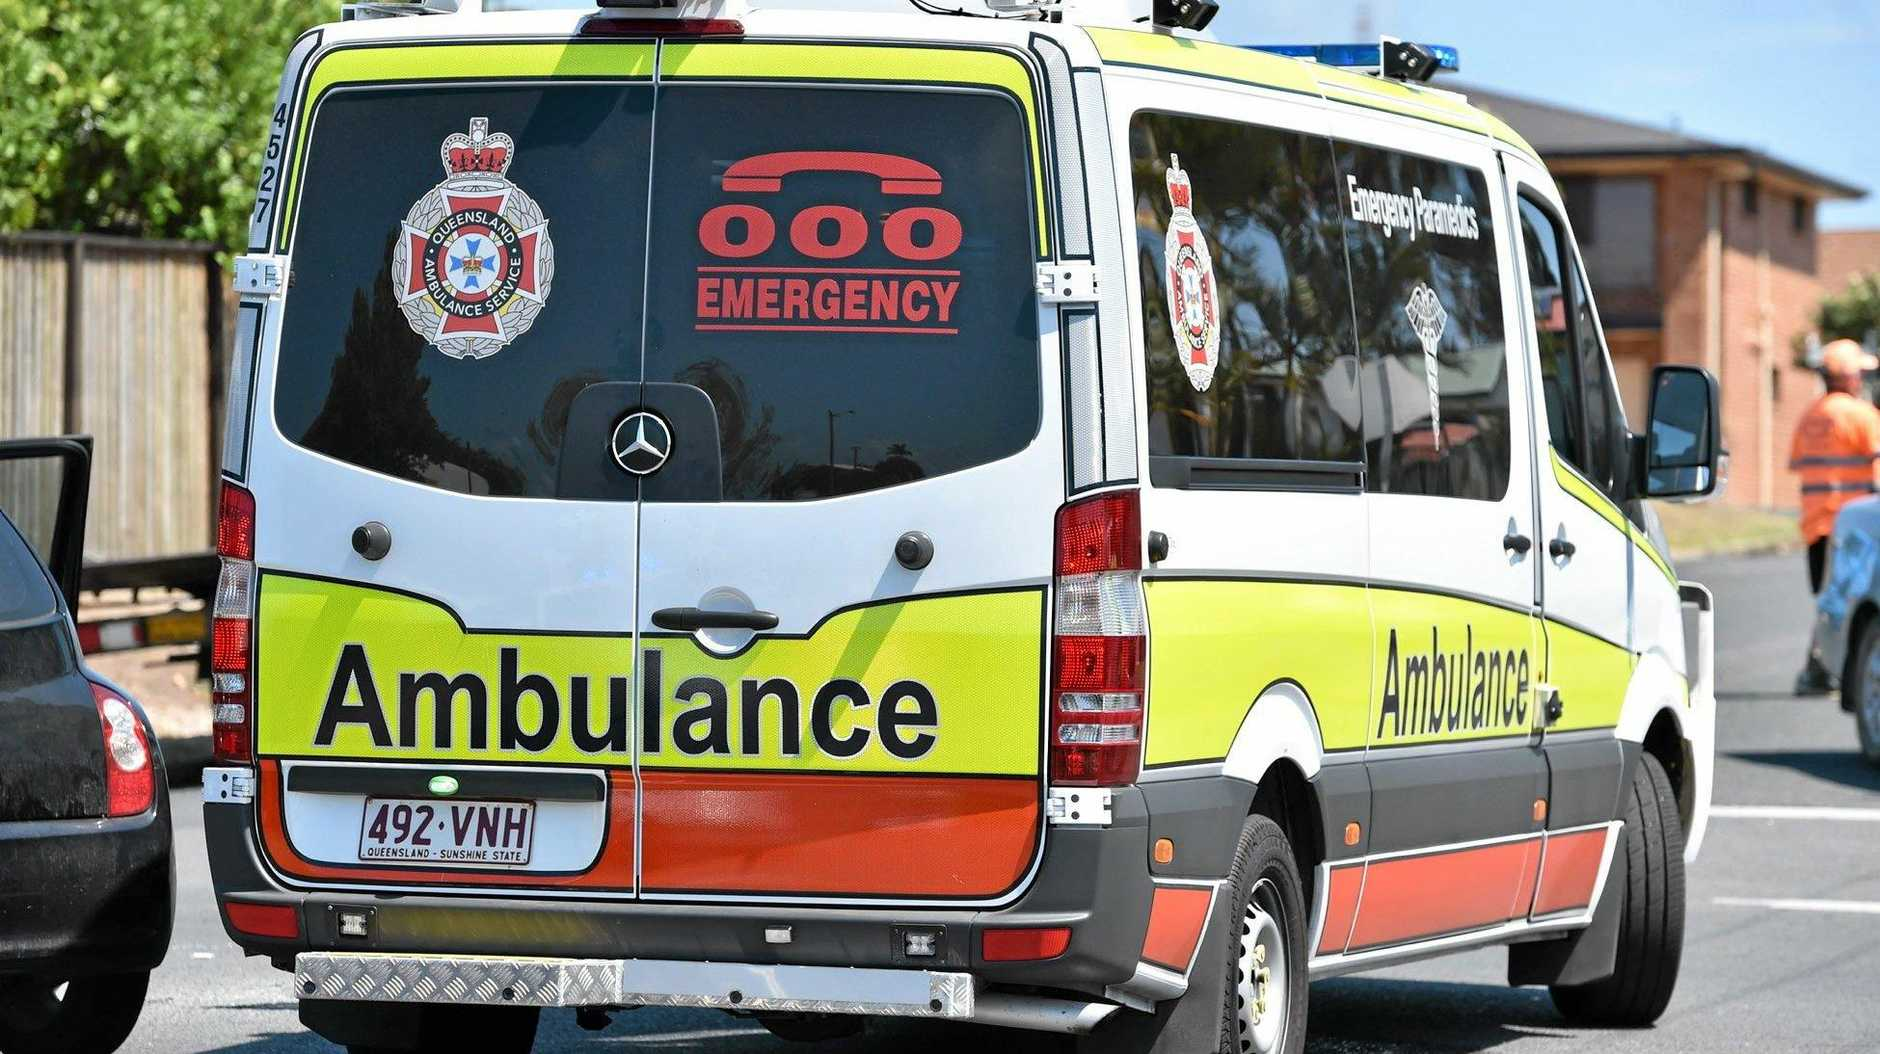 PARAMEDICS are assessing a woman in her 60's after it was reported her vehicle ran off the road at Calliope this morning.